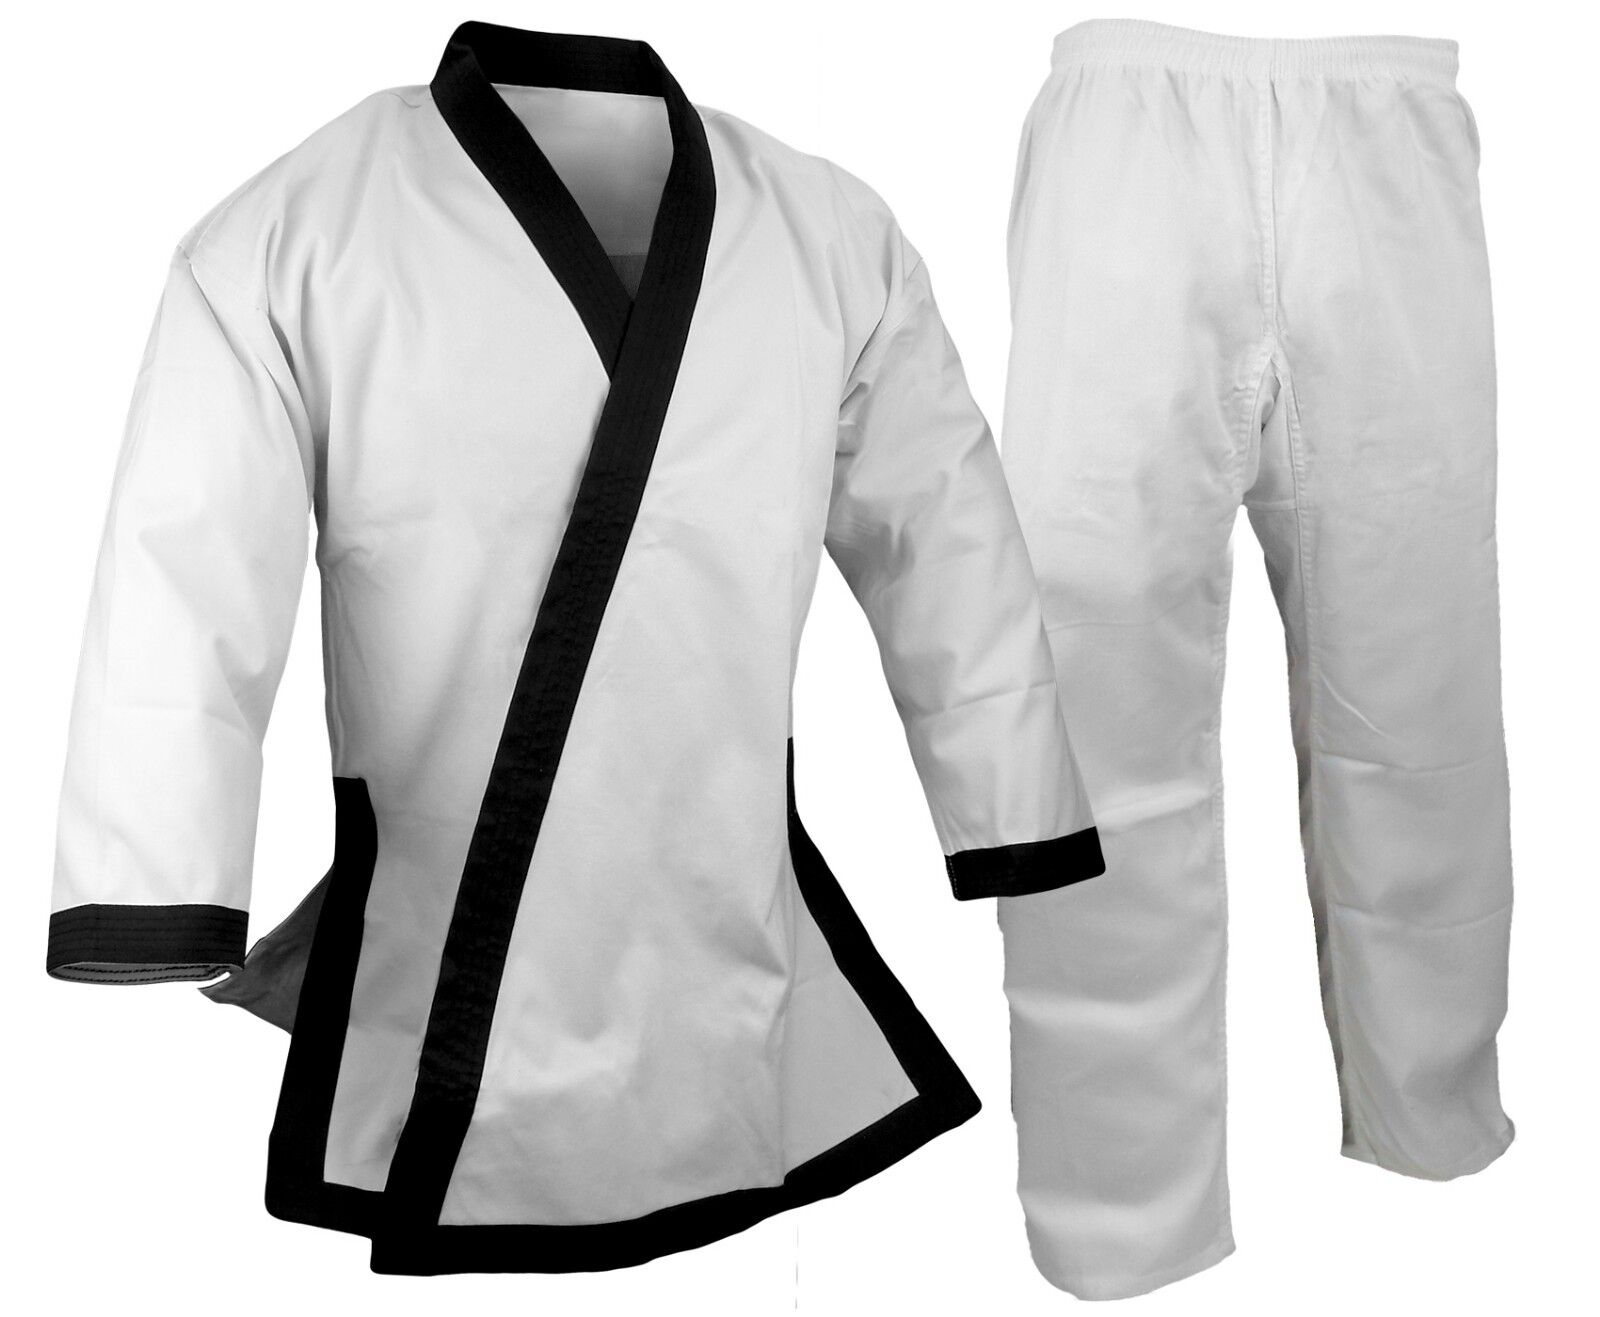 8.5OZ SUPER MIDDLEWEIGHT TOPS WITH FULL TRIM Tang Soo Do b6400